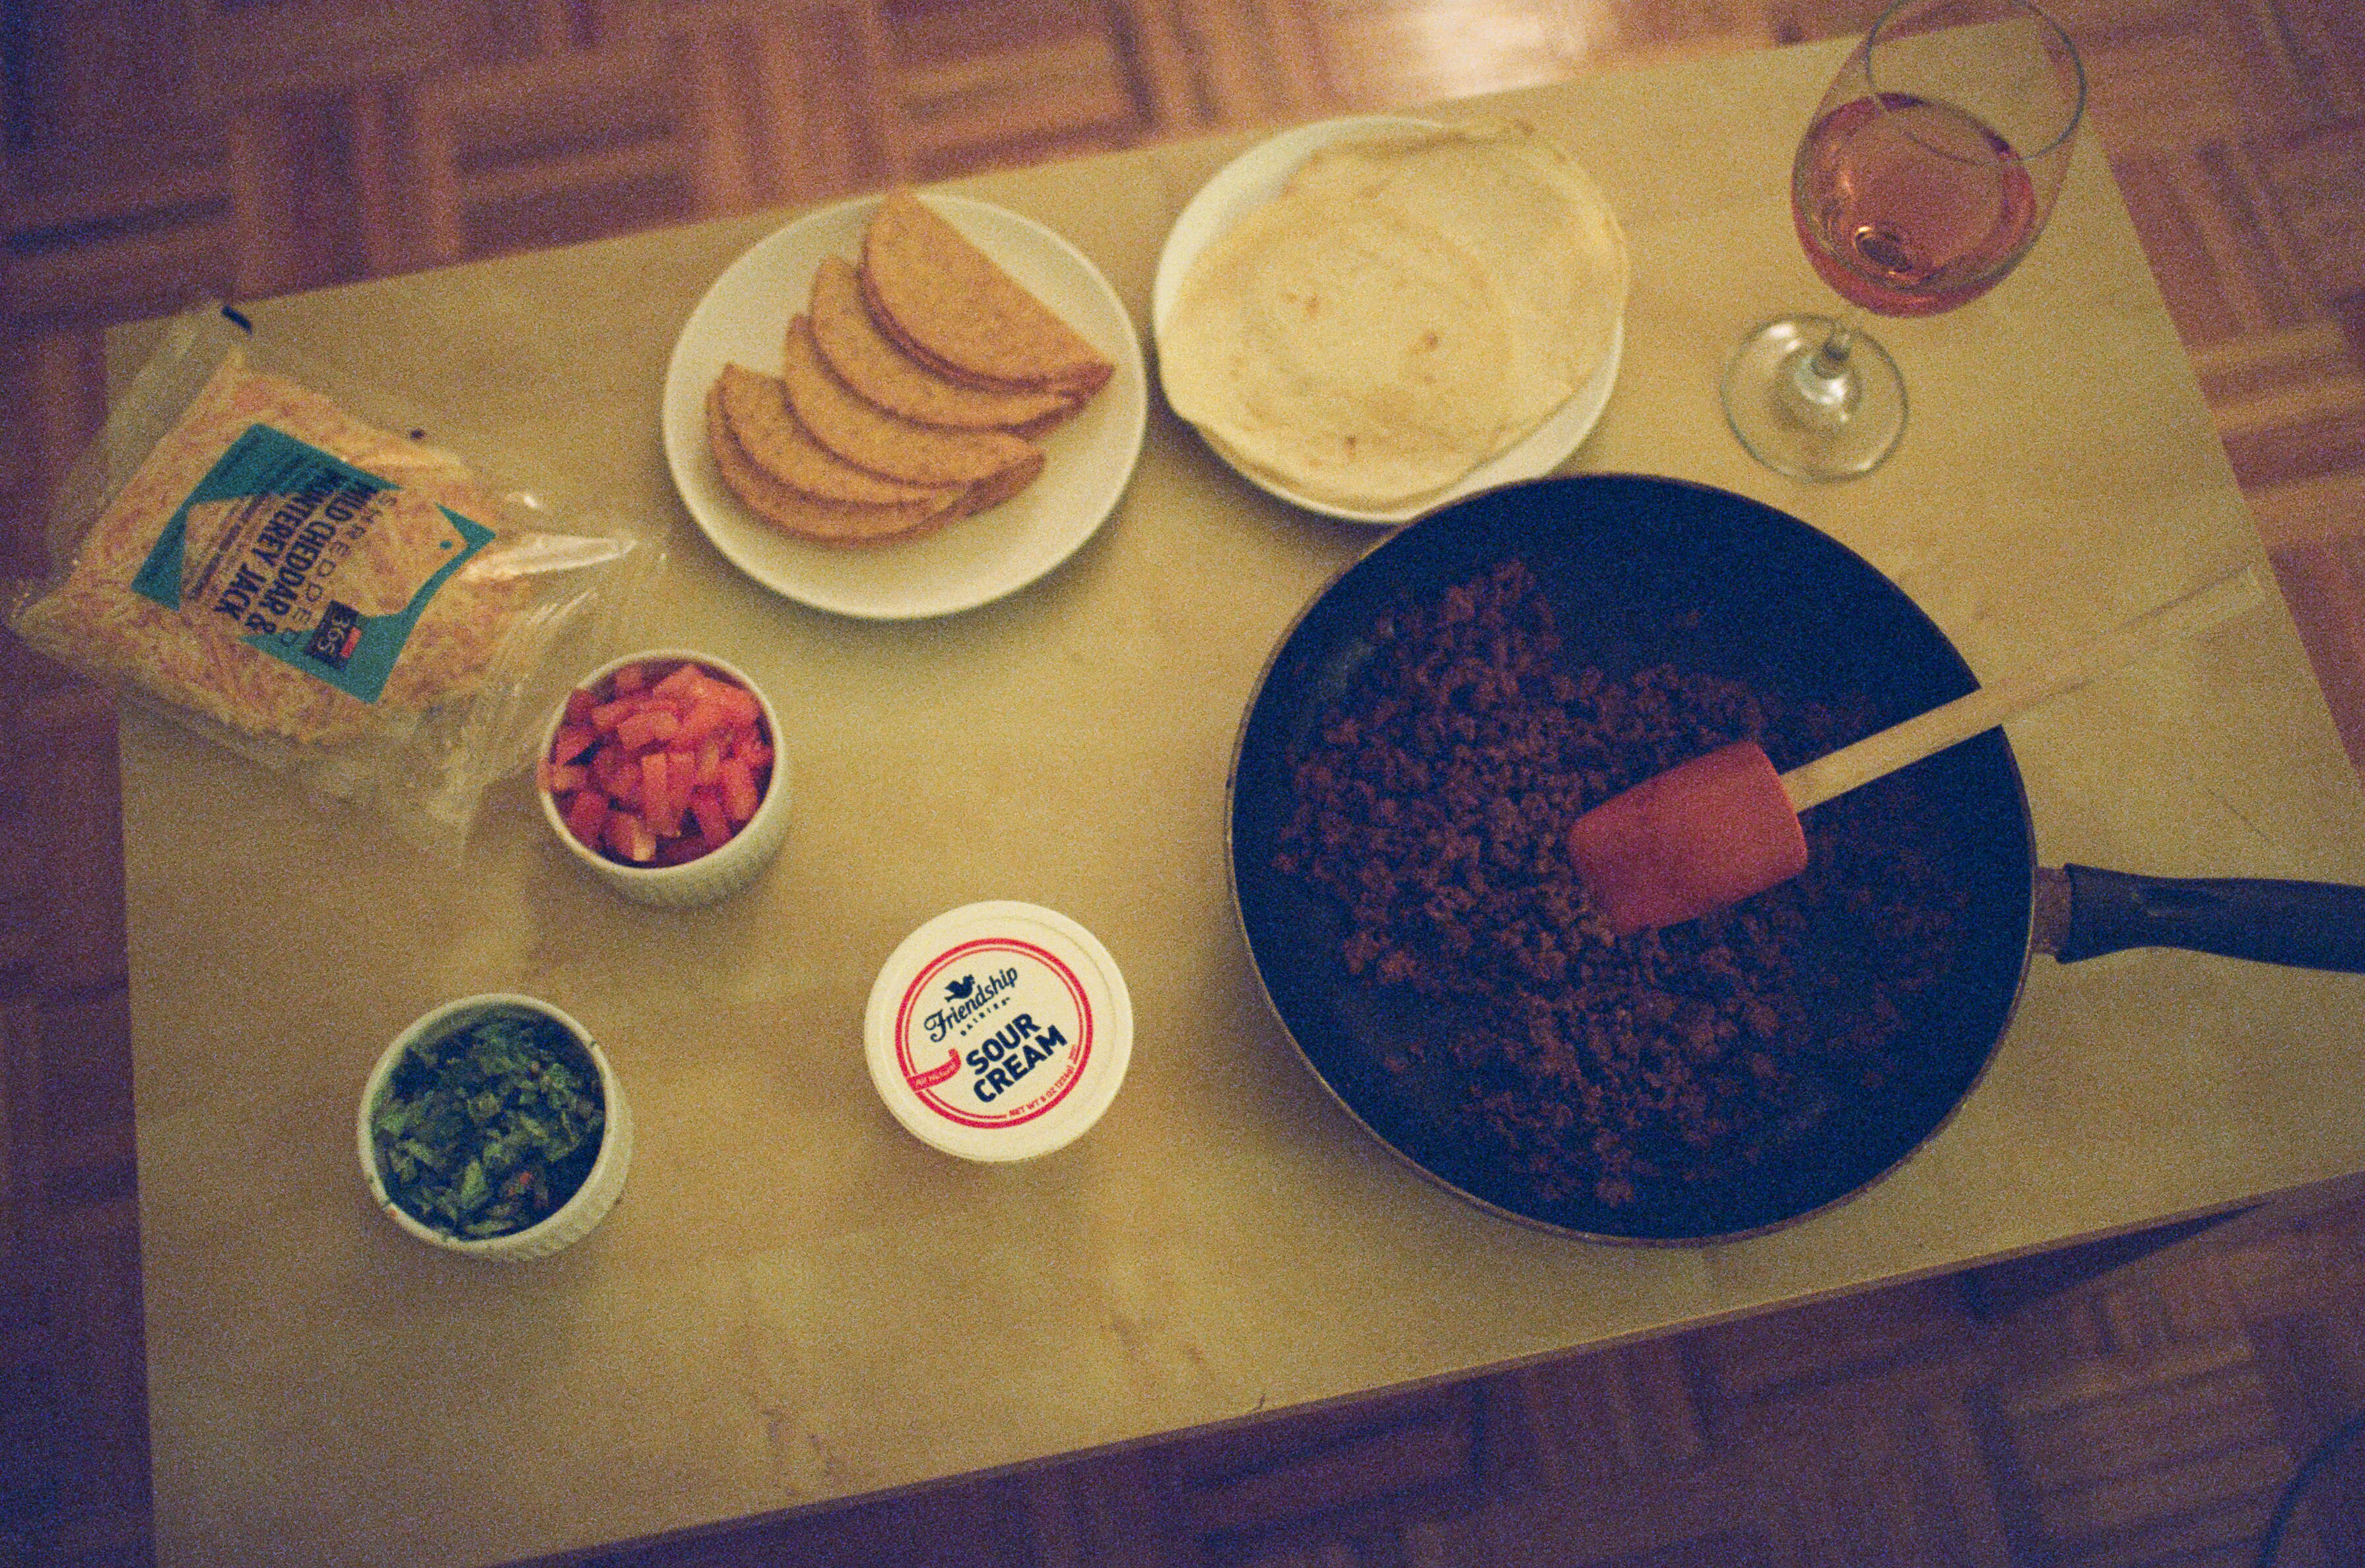 Motherfuckin' Taco Night  - E 95th Street, NYC